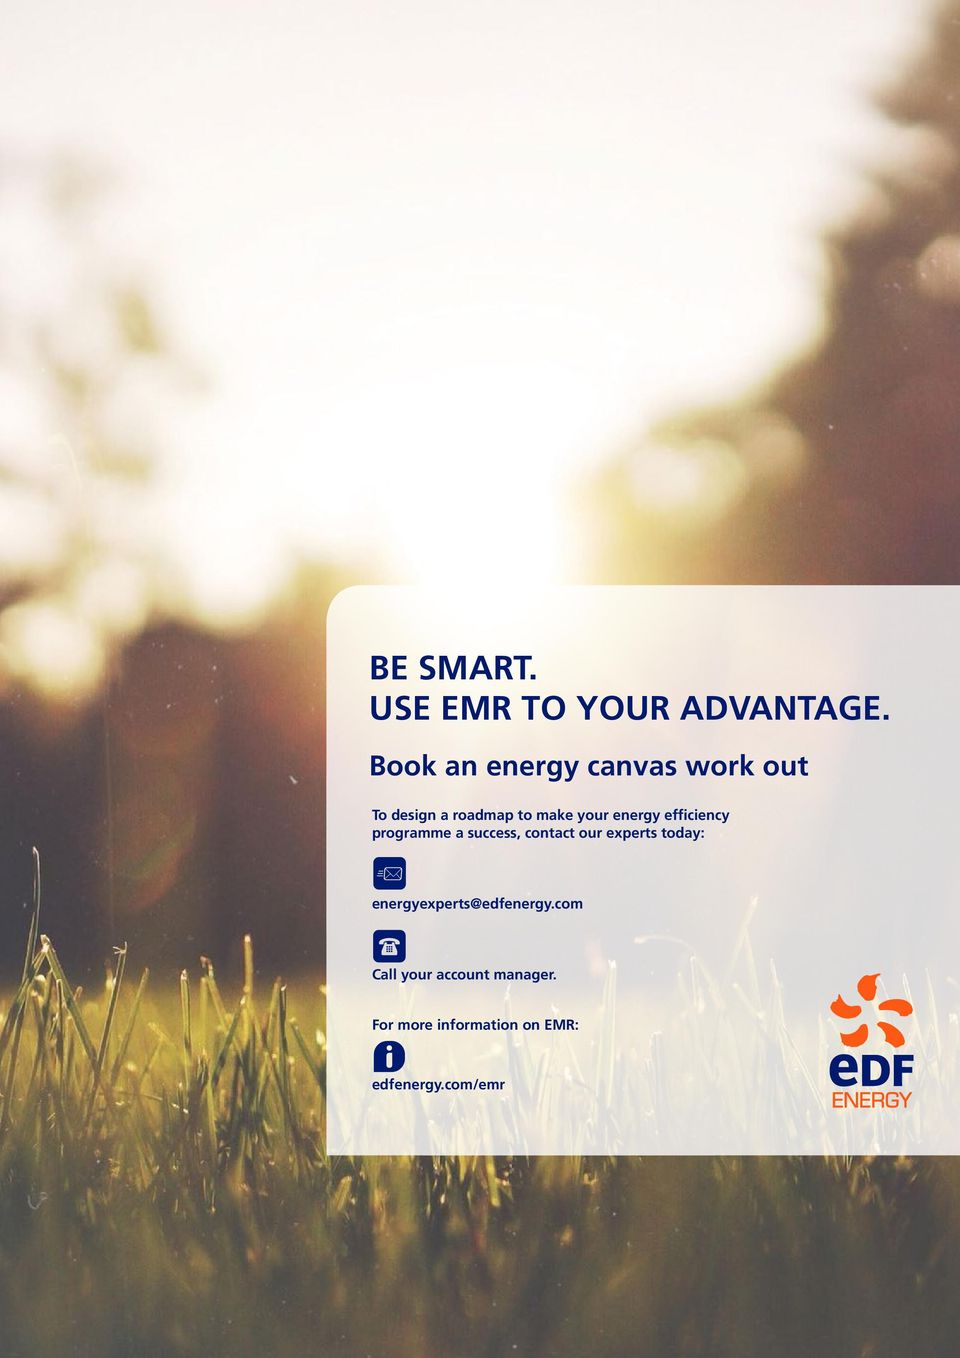 energy efficiency programme a success, contact our experts today: